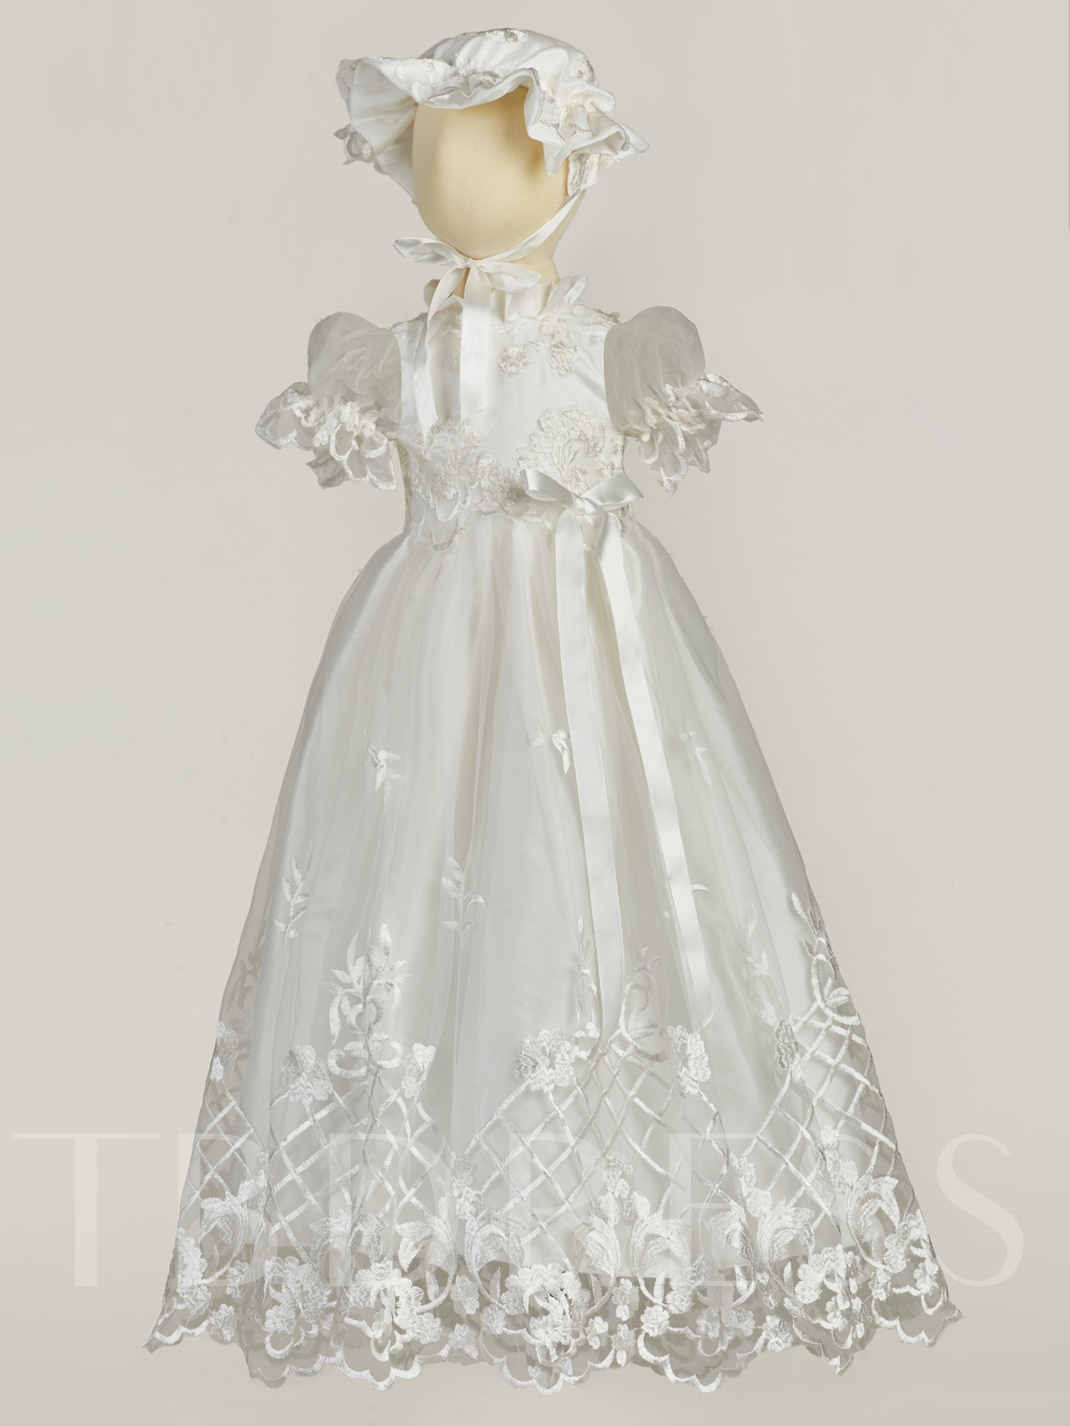 Baby-Girl's Christening Baptism Dress with Bonnet